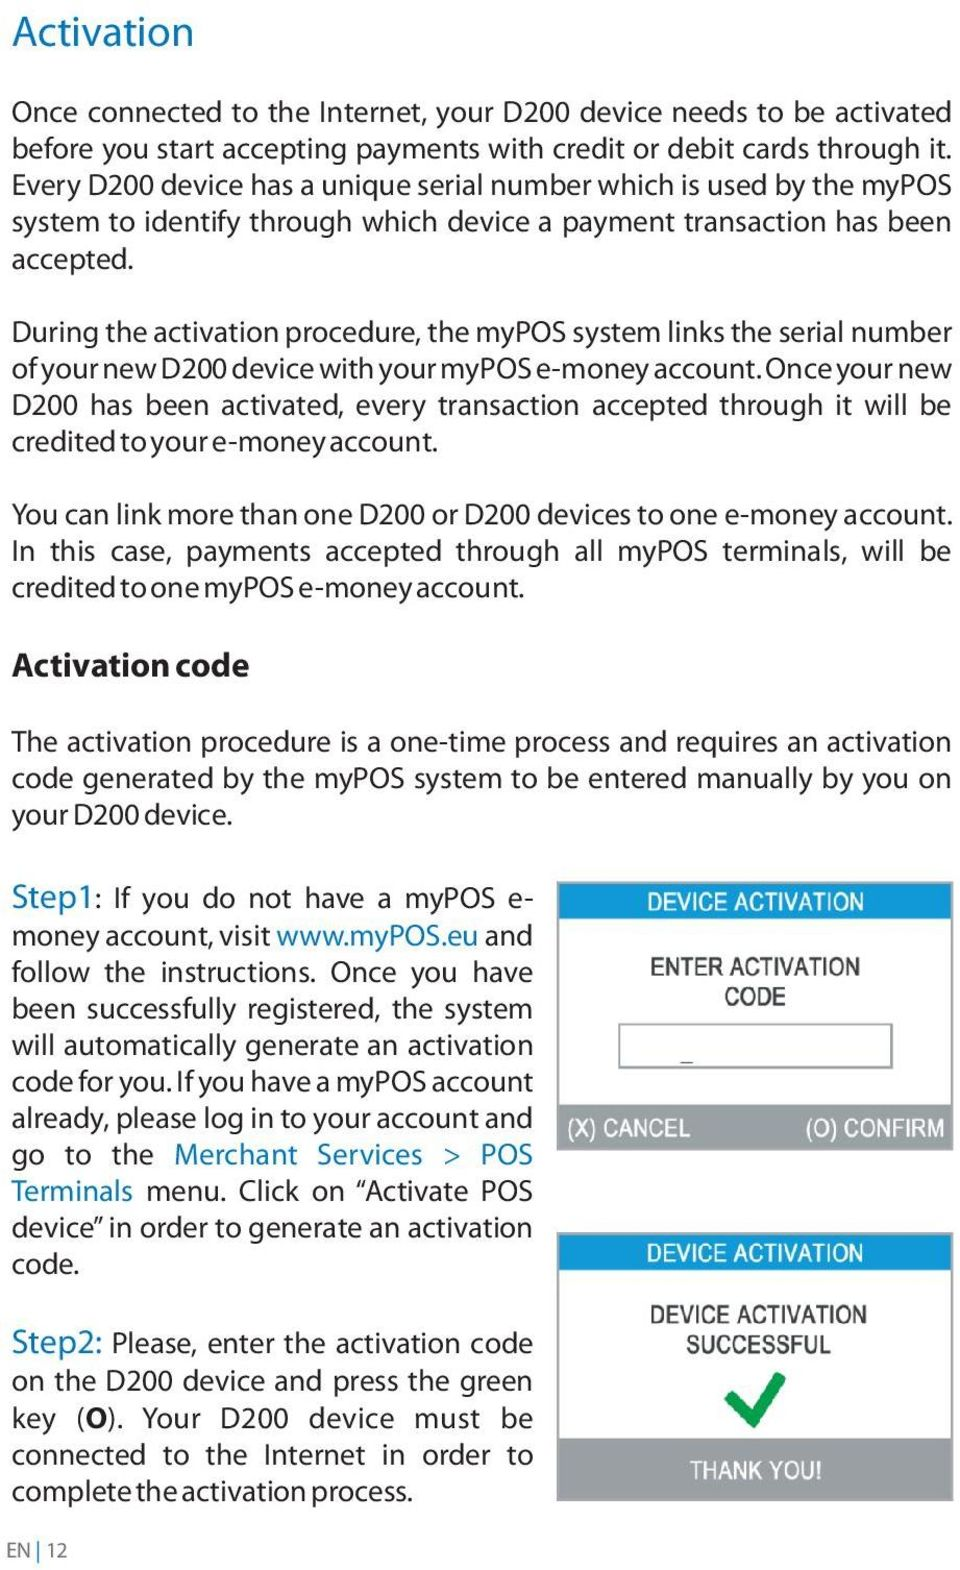 During the activation procedure, the mypos system links the serial number of your new D200 device with your mypos e-money account.